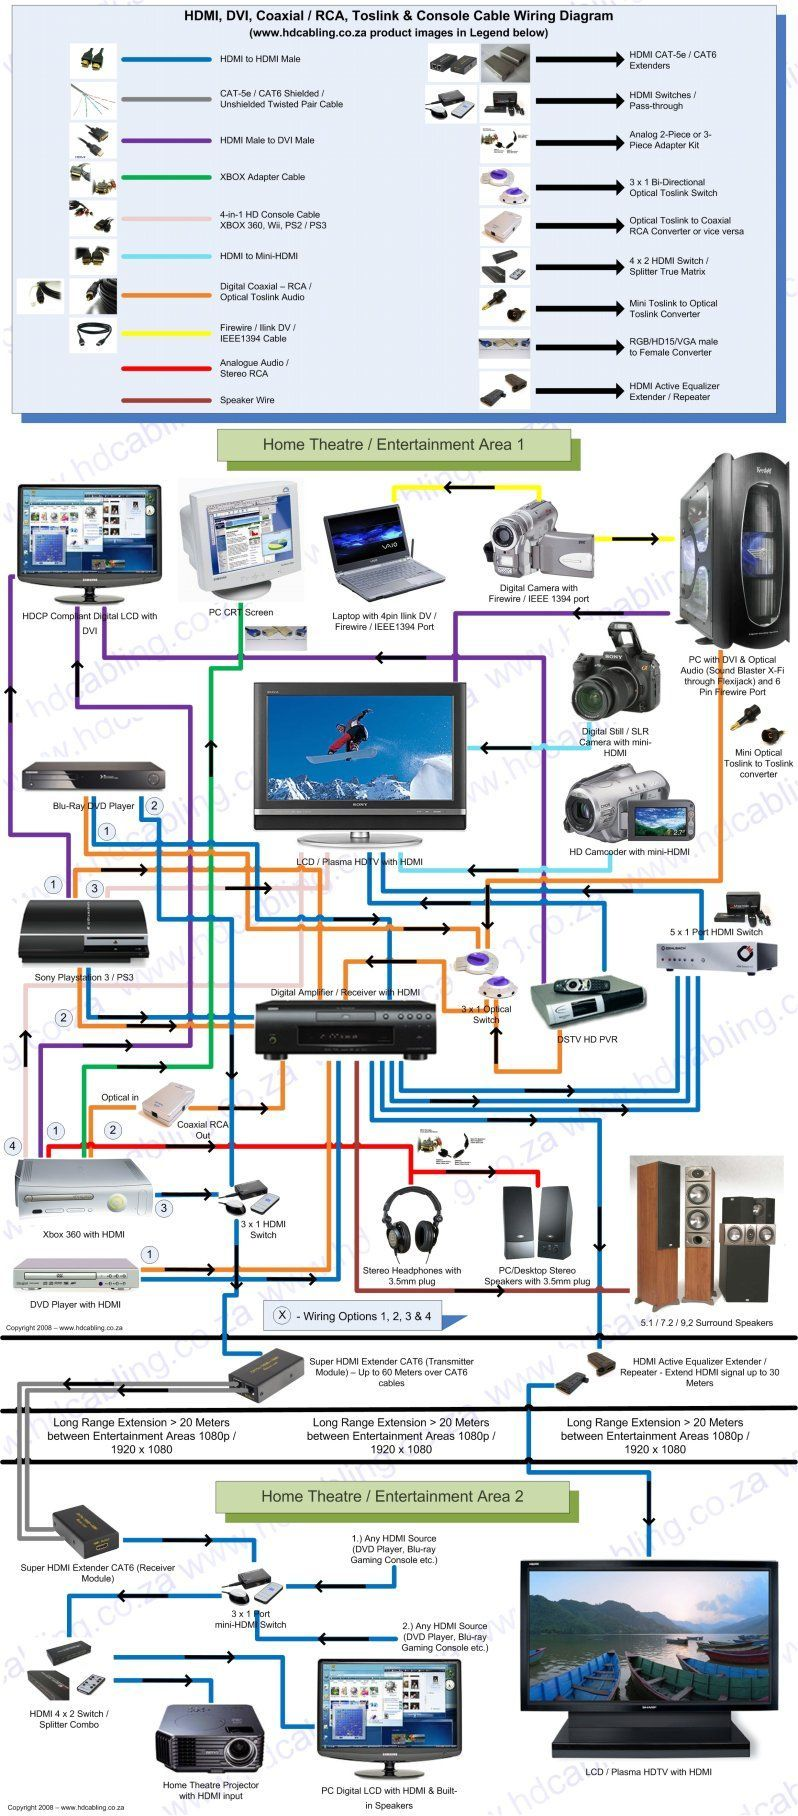 Home Theater Diagram 6 Smart Home Automation Home Theater Setup Home Theater